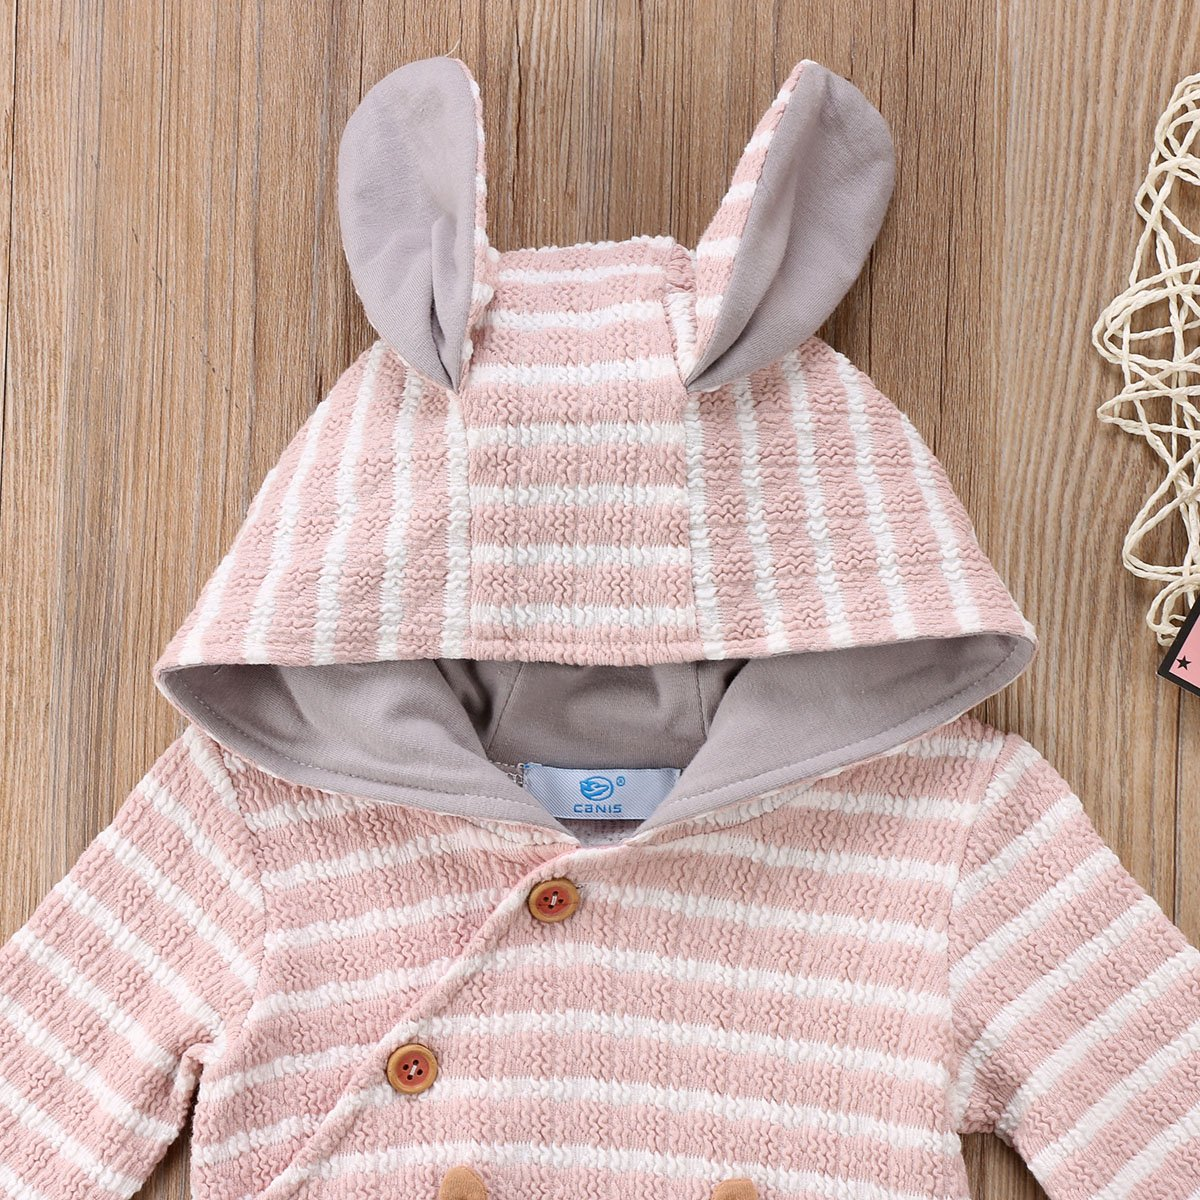 Baby Boys Girls Fox Striped Ear Hoodie Romper Jumpsuit Outfit Long Sleeve Buttons Creepers Clothes